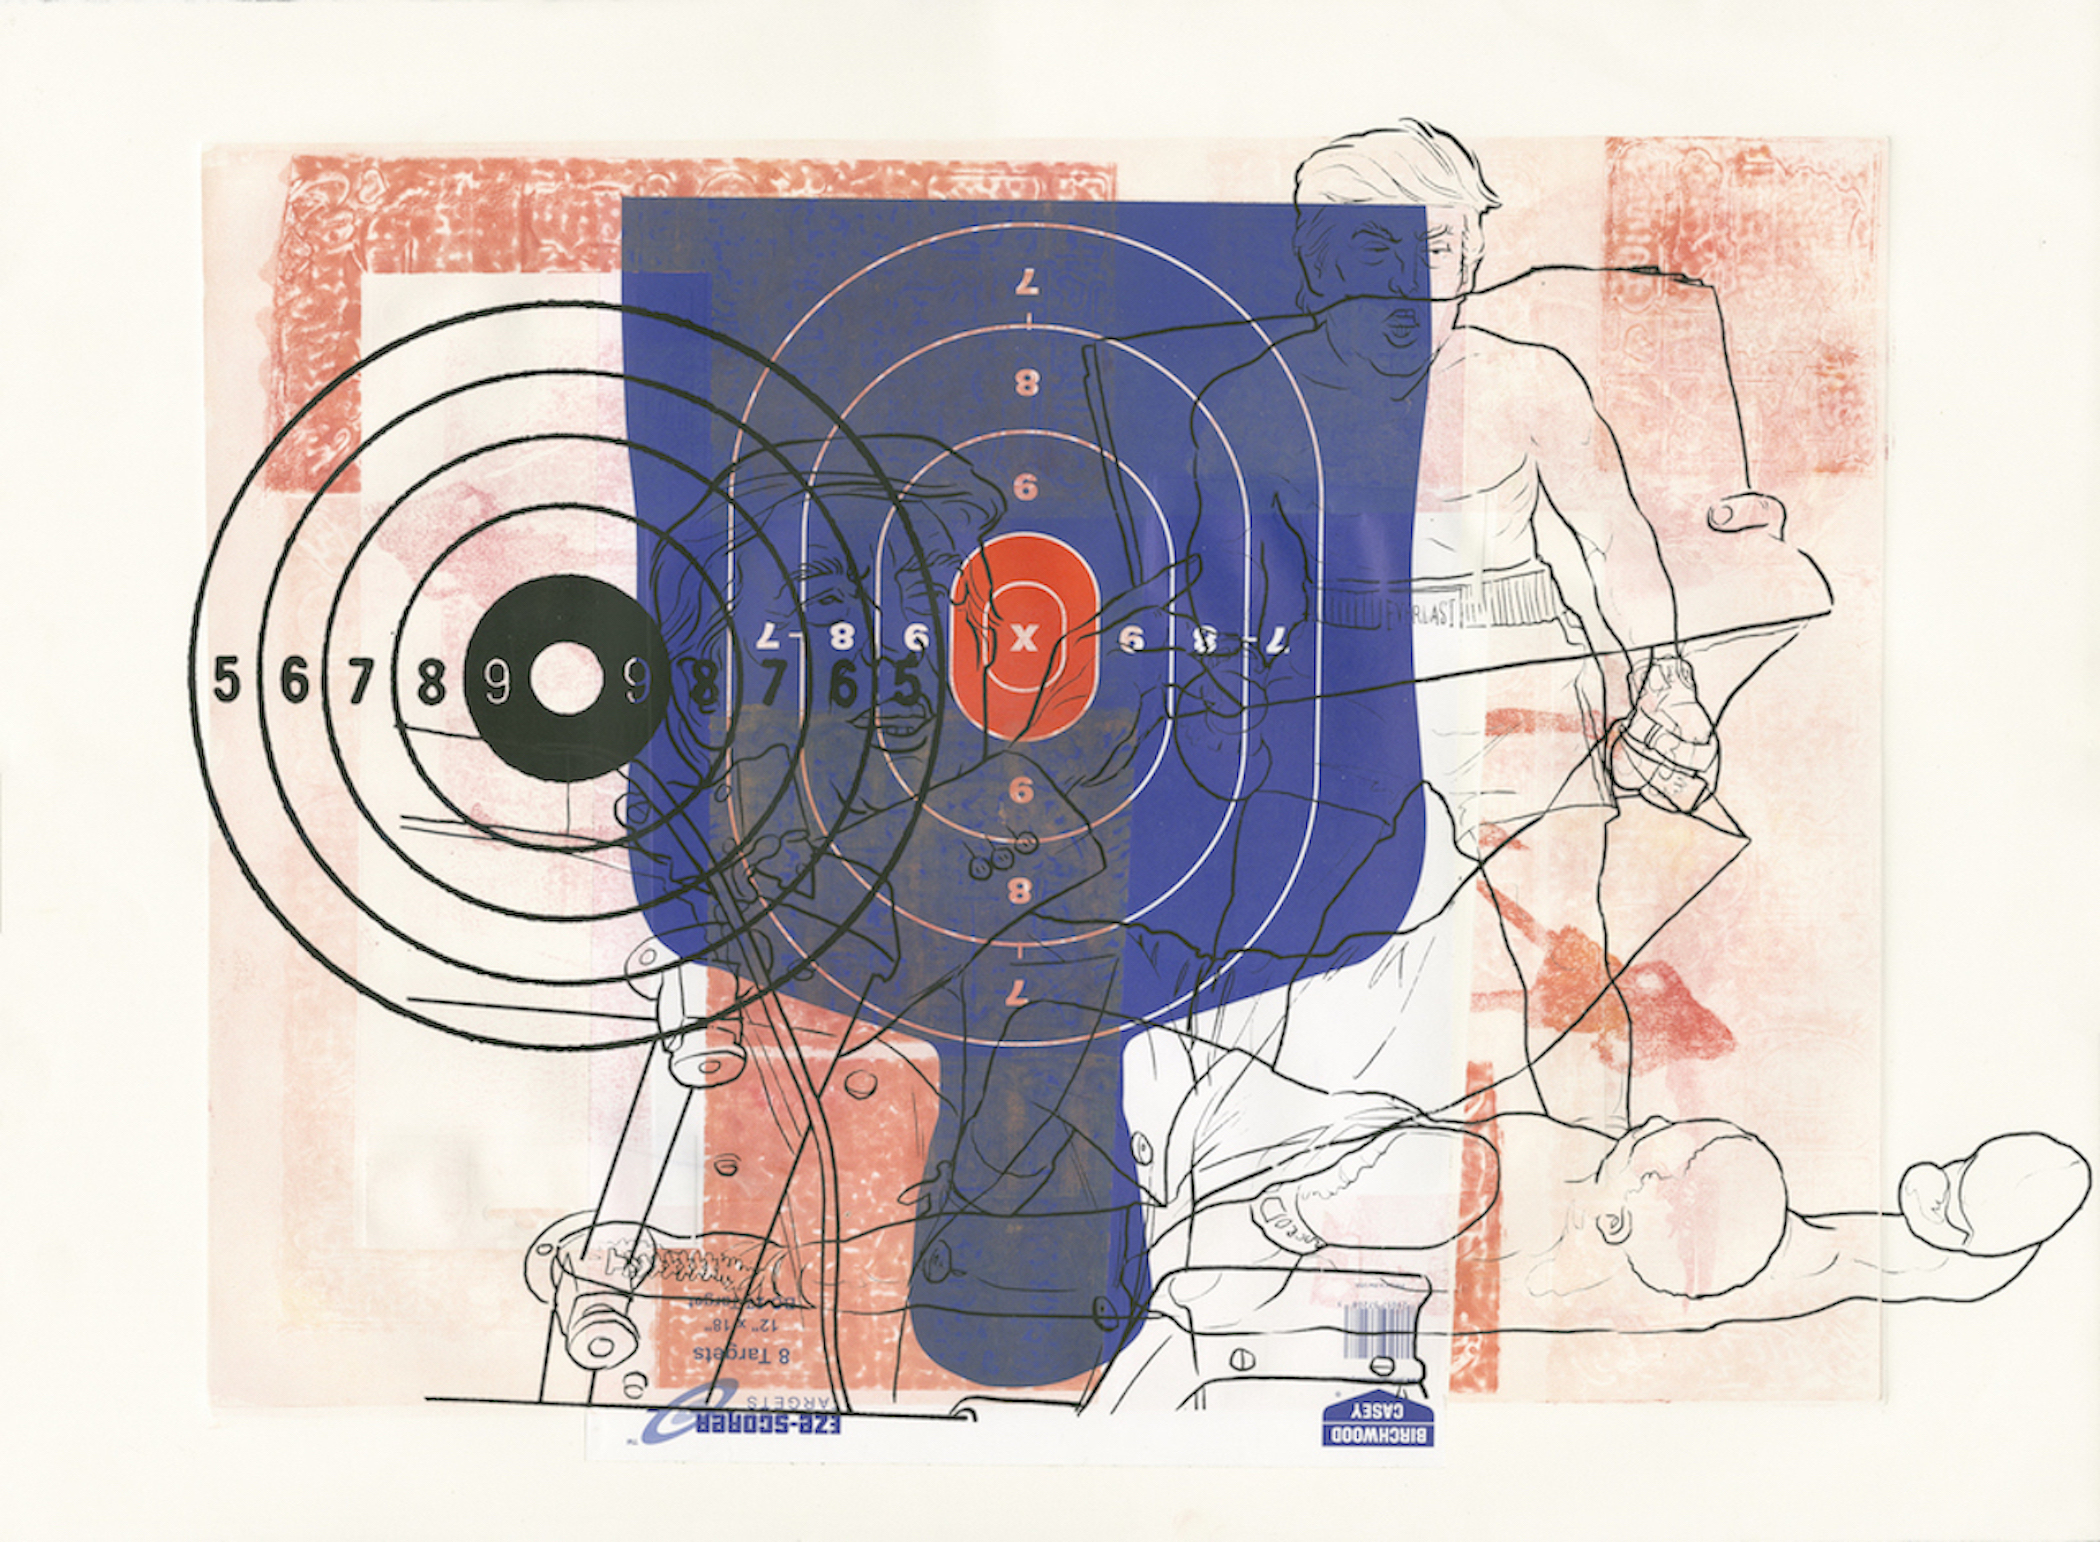 """Gun Lobby"" by Margaret Roleke, monoprint with collage and silkscreen, 22x30"